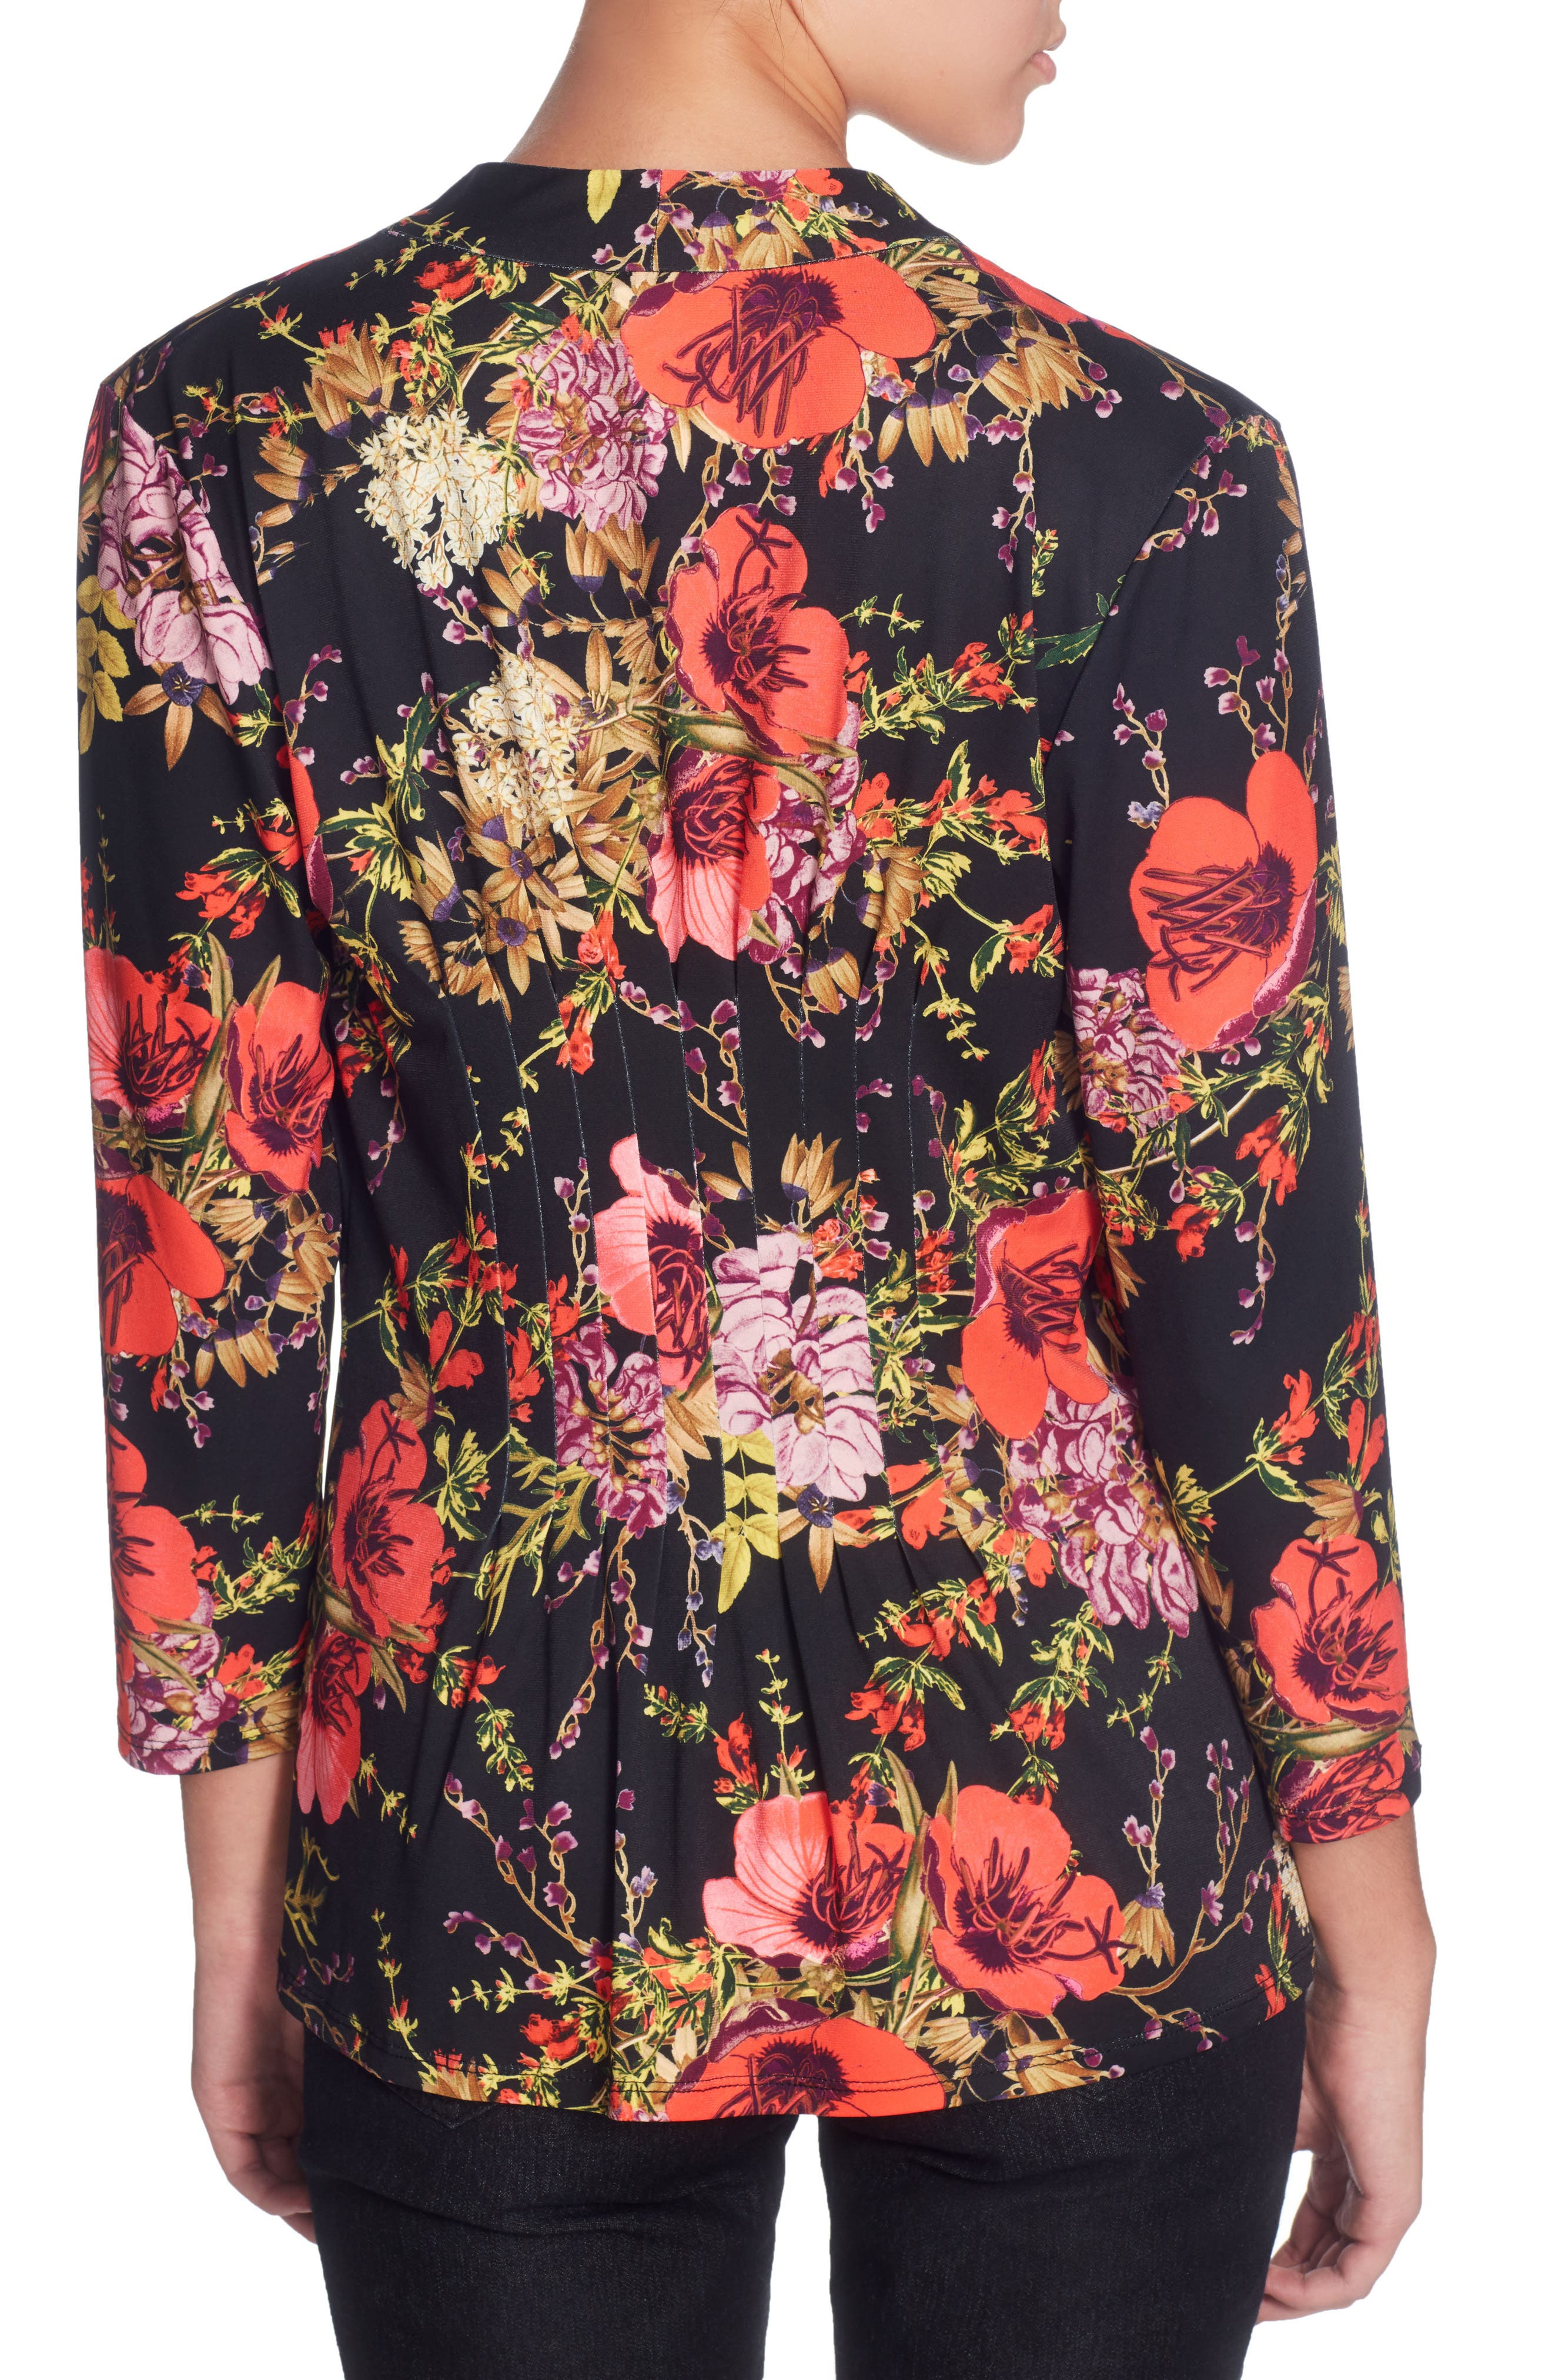 Rea Floral Print Top,                             Alternate thumbnail 2, color,                             Ethereal Garden Black